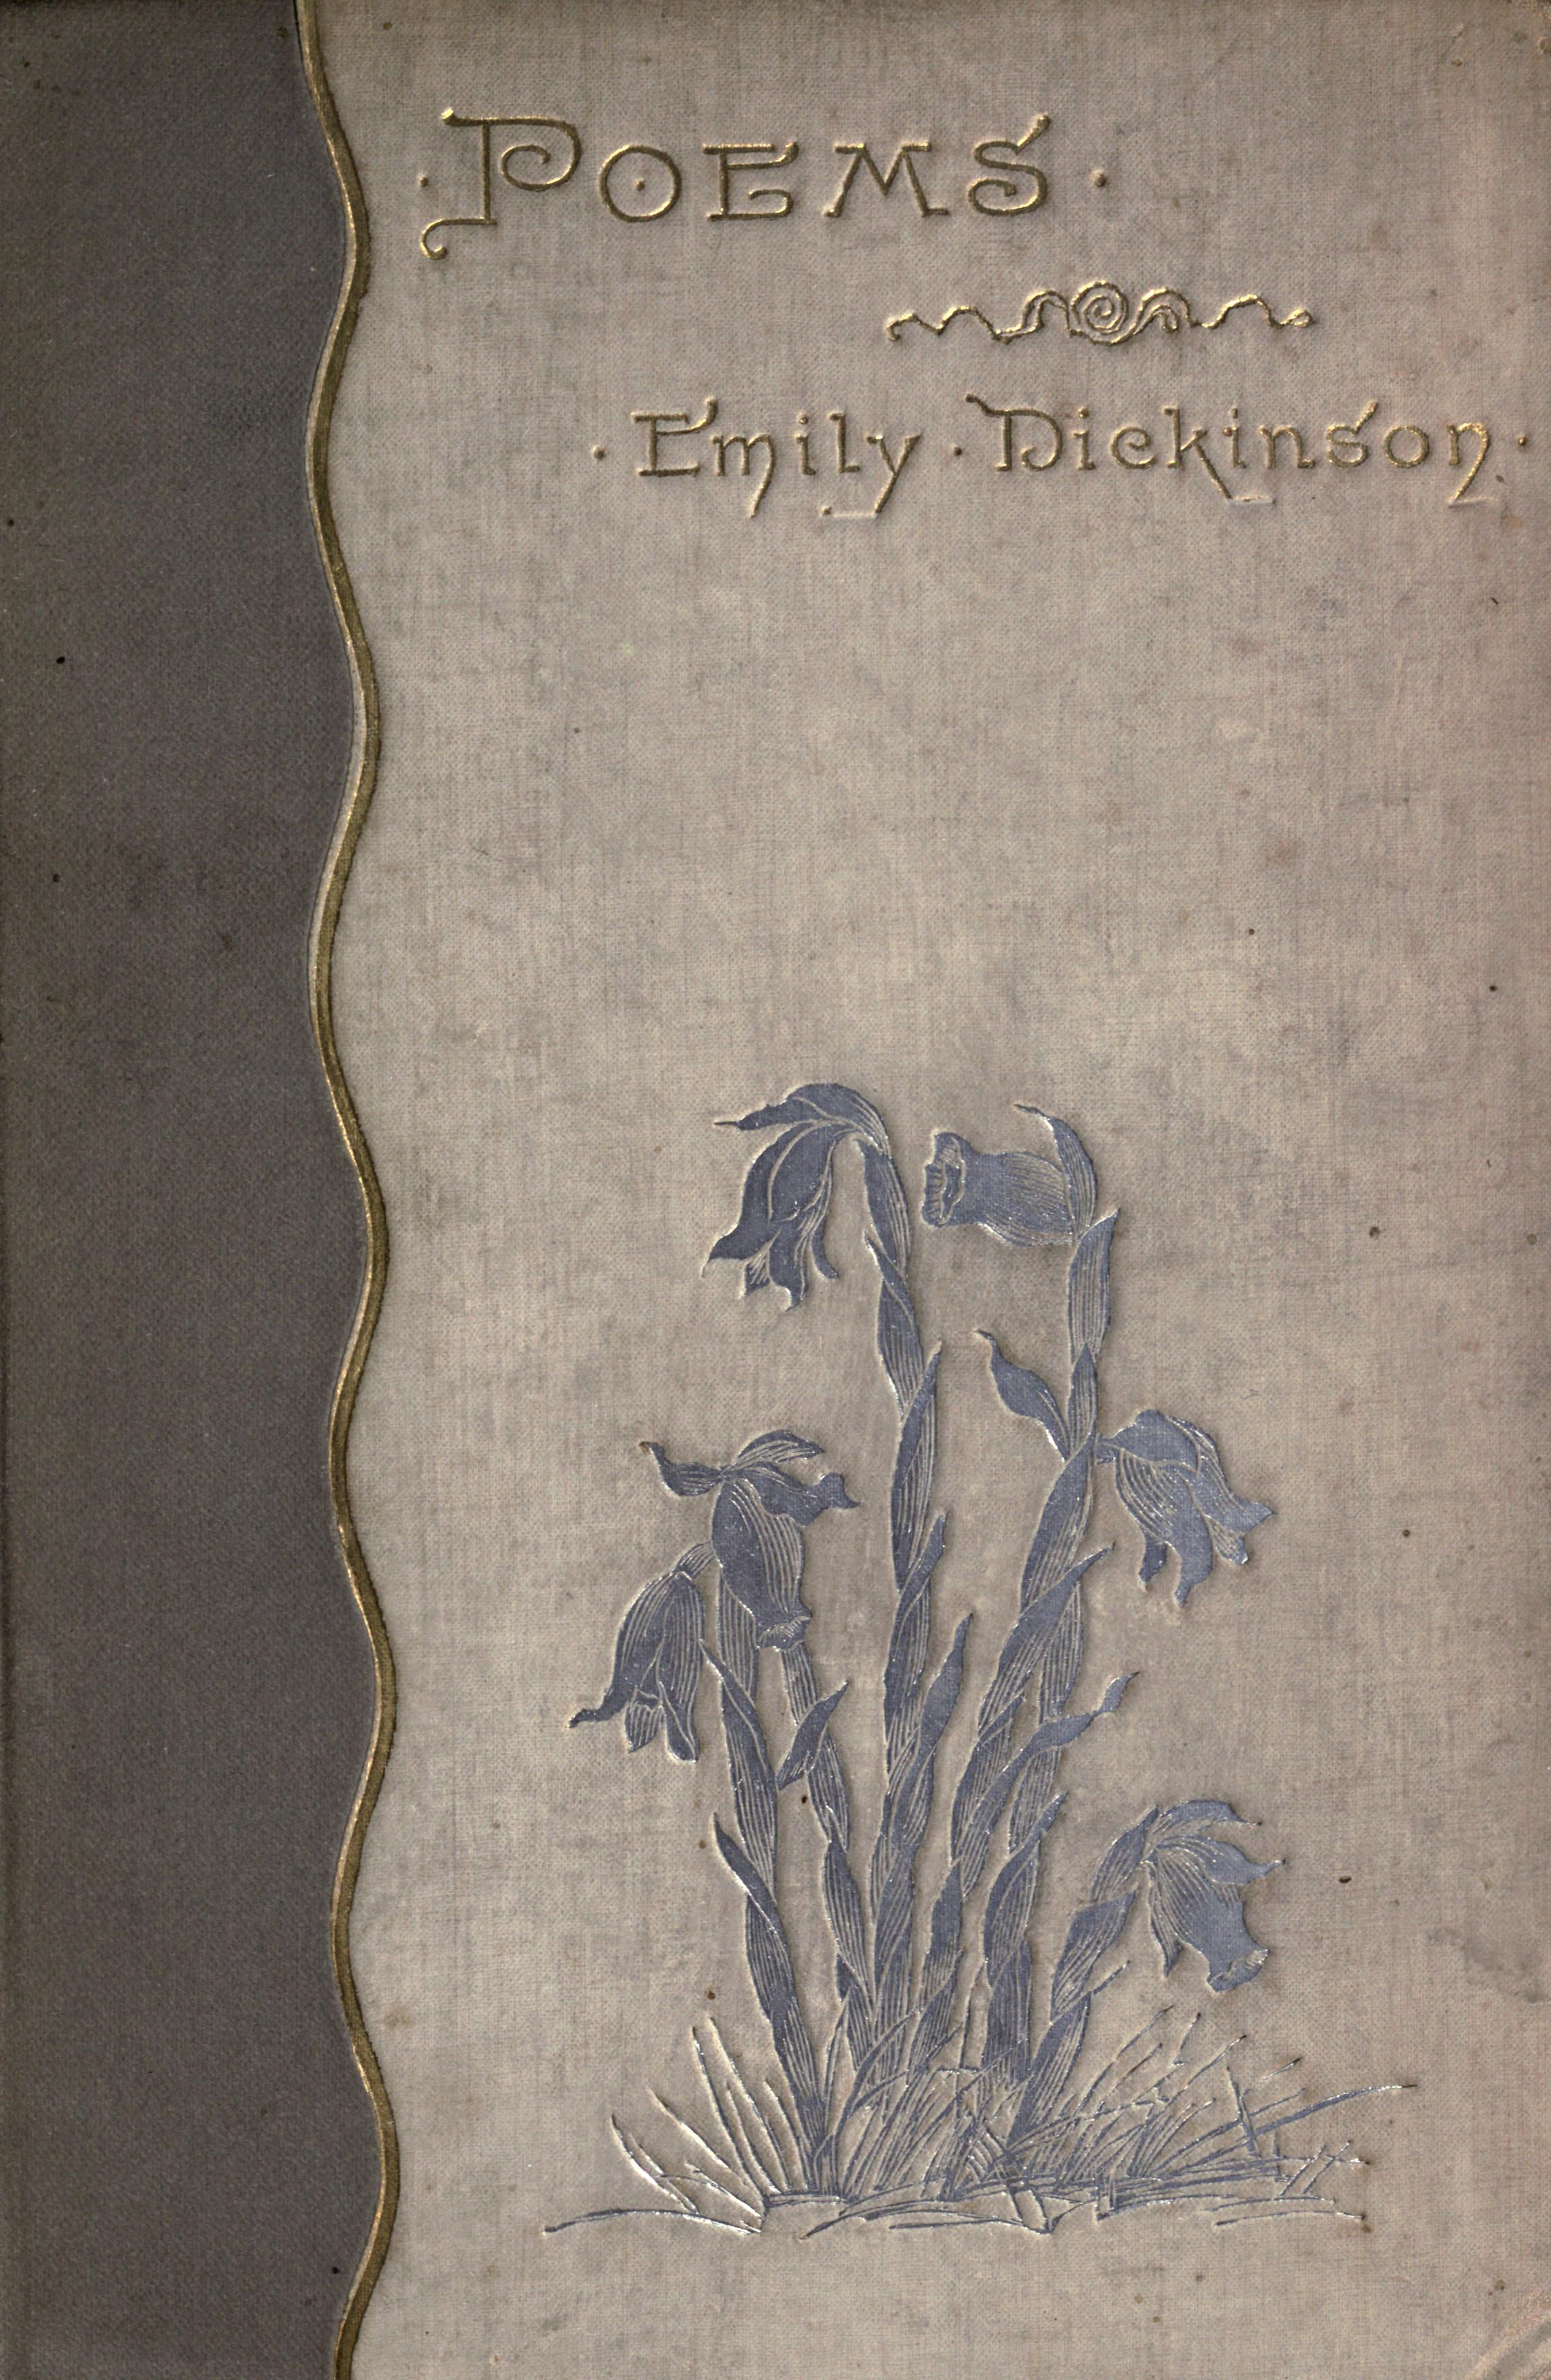 an analysis of the works of emily dickinson Poetry analysis on because i could not stop for death by emily dickinson death it is known that emily dickinson had a natural fear and obsession for death and her contemplation of her death is reflected in her poem, because i could not stop for death.